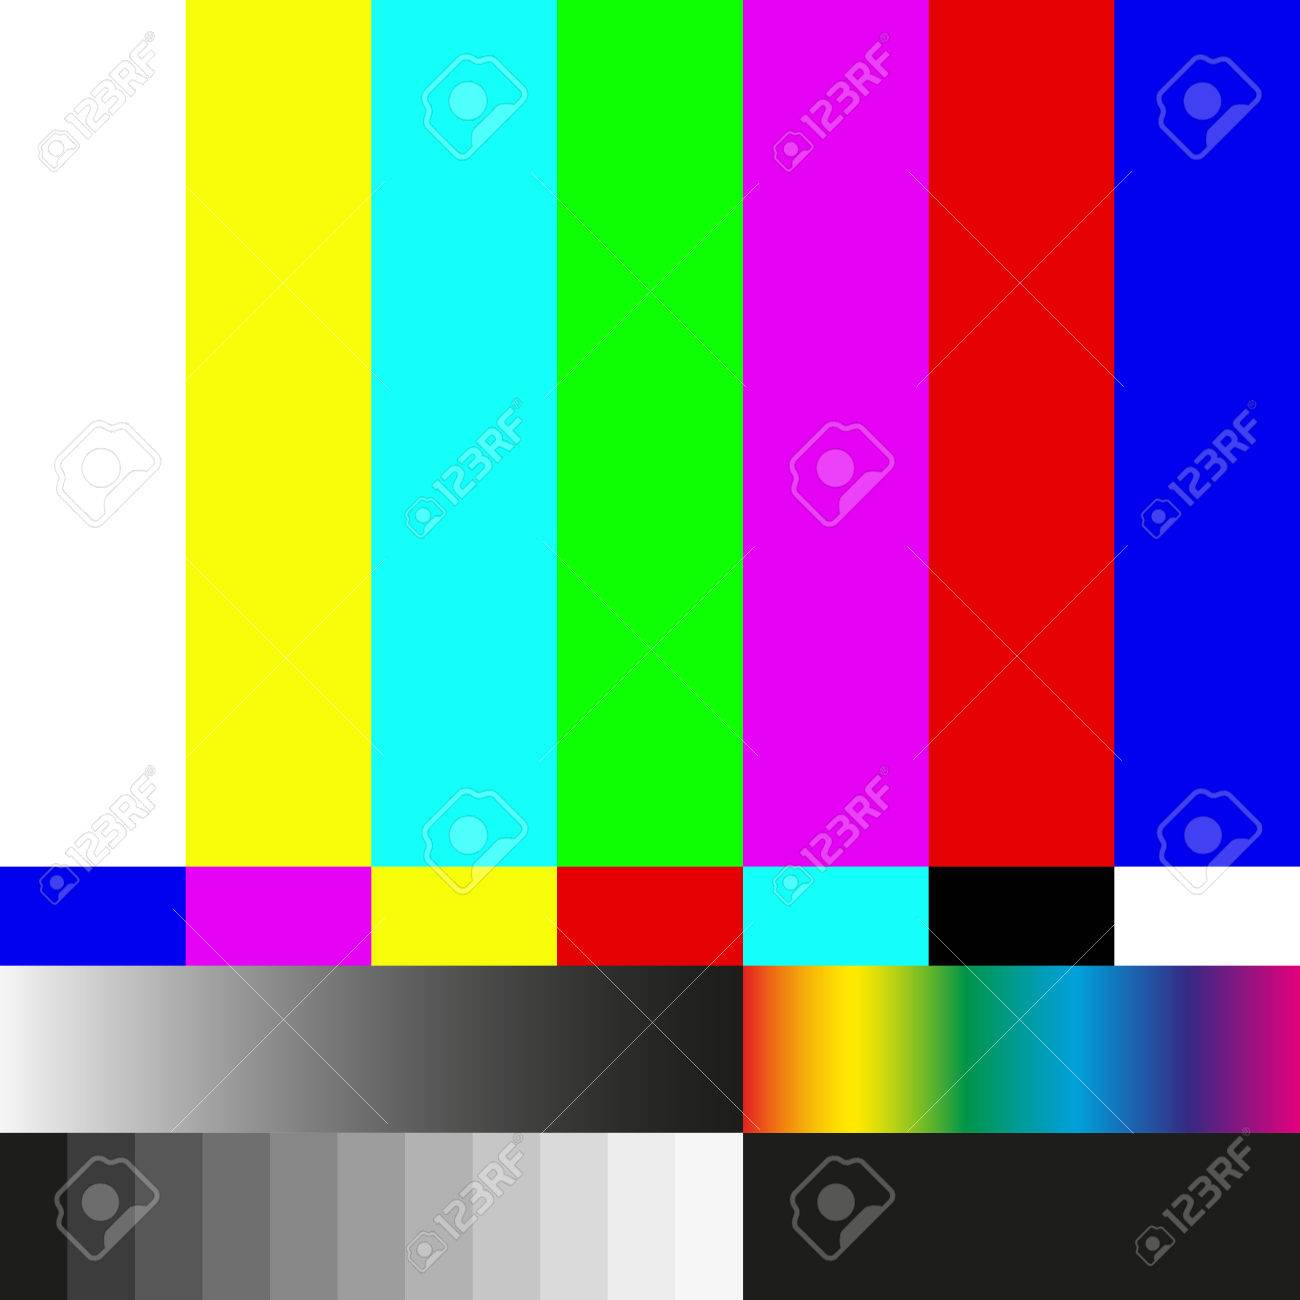 Test Tv Screen Background And Television Error Illustration Royalty